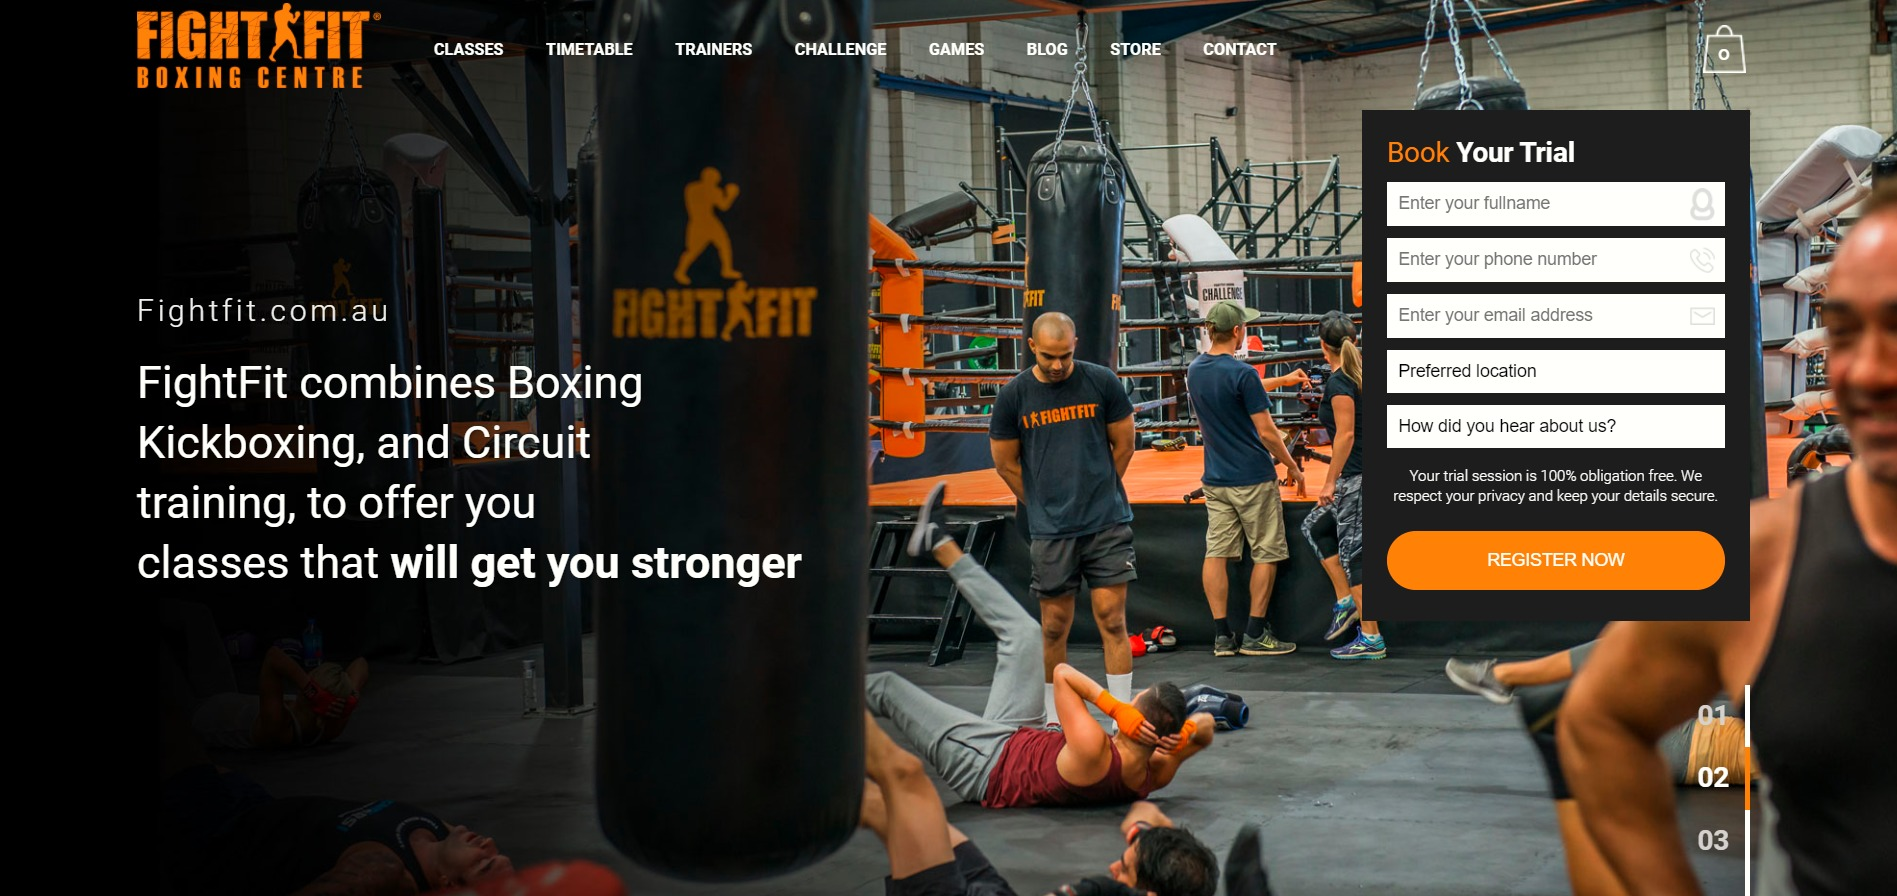 Fightfit Boxing Centre